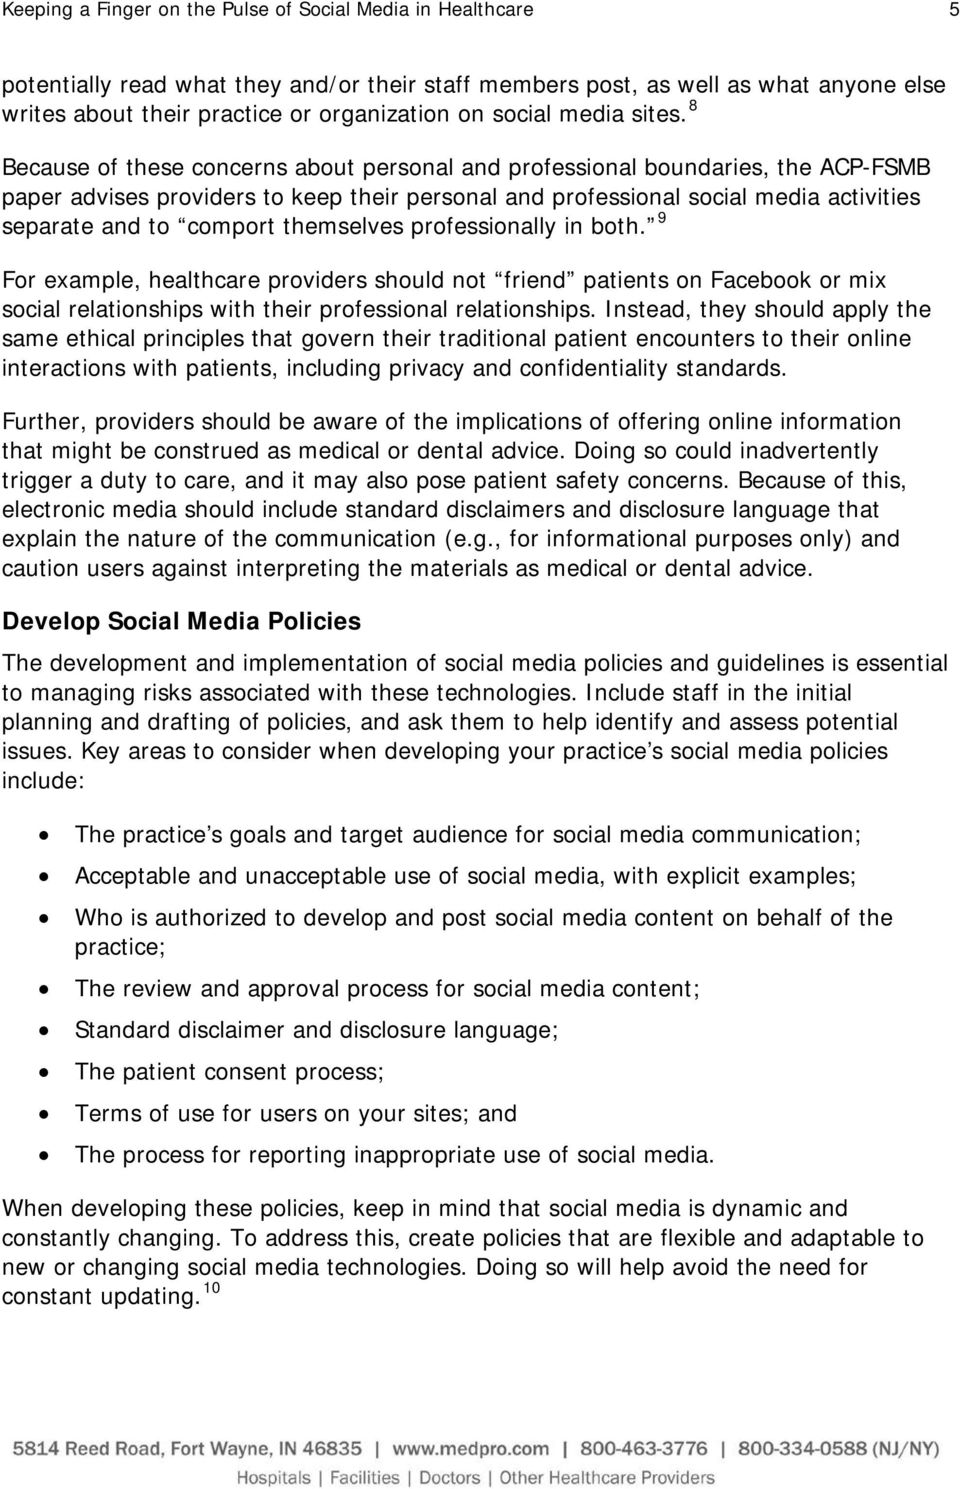 8 Because of these concerns about personal and professional boundaries, the ACP-FSMB paper advises providers to keep their personal and professional social media activities separate and to comport